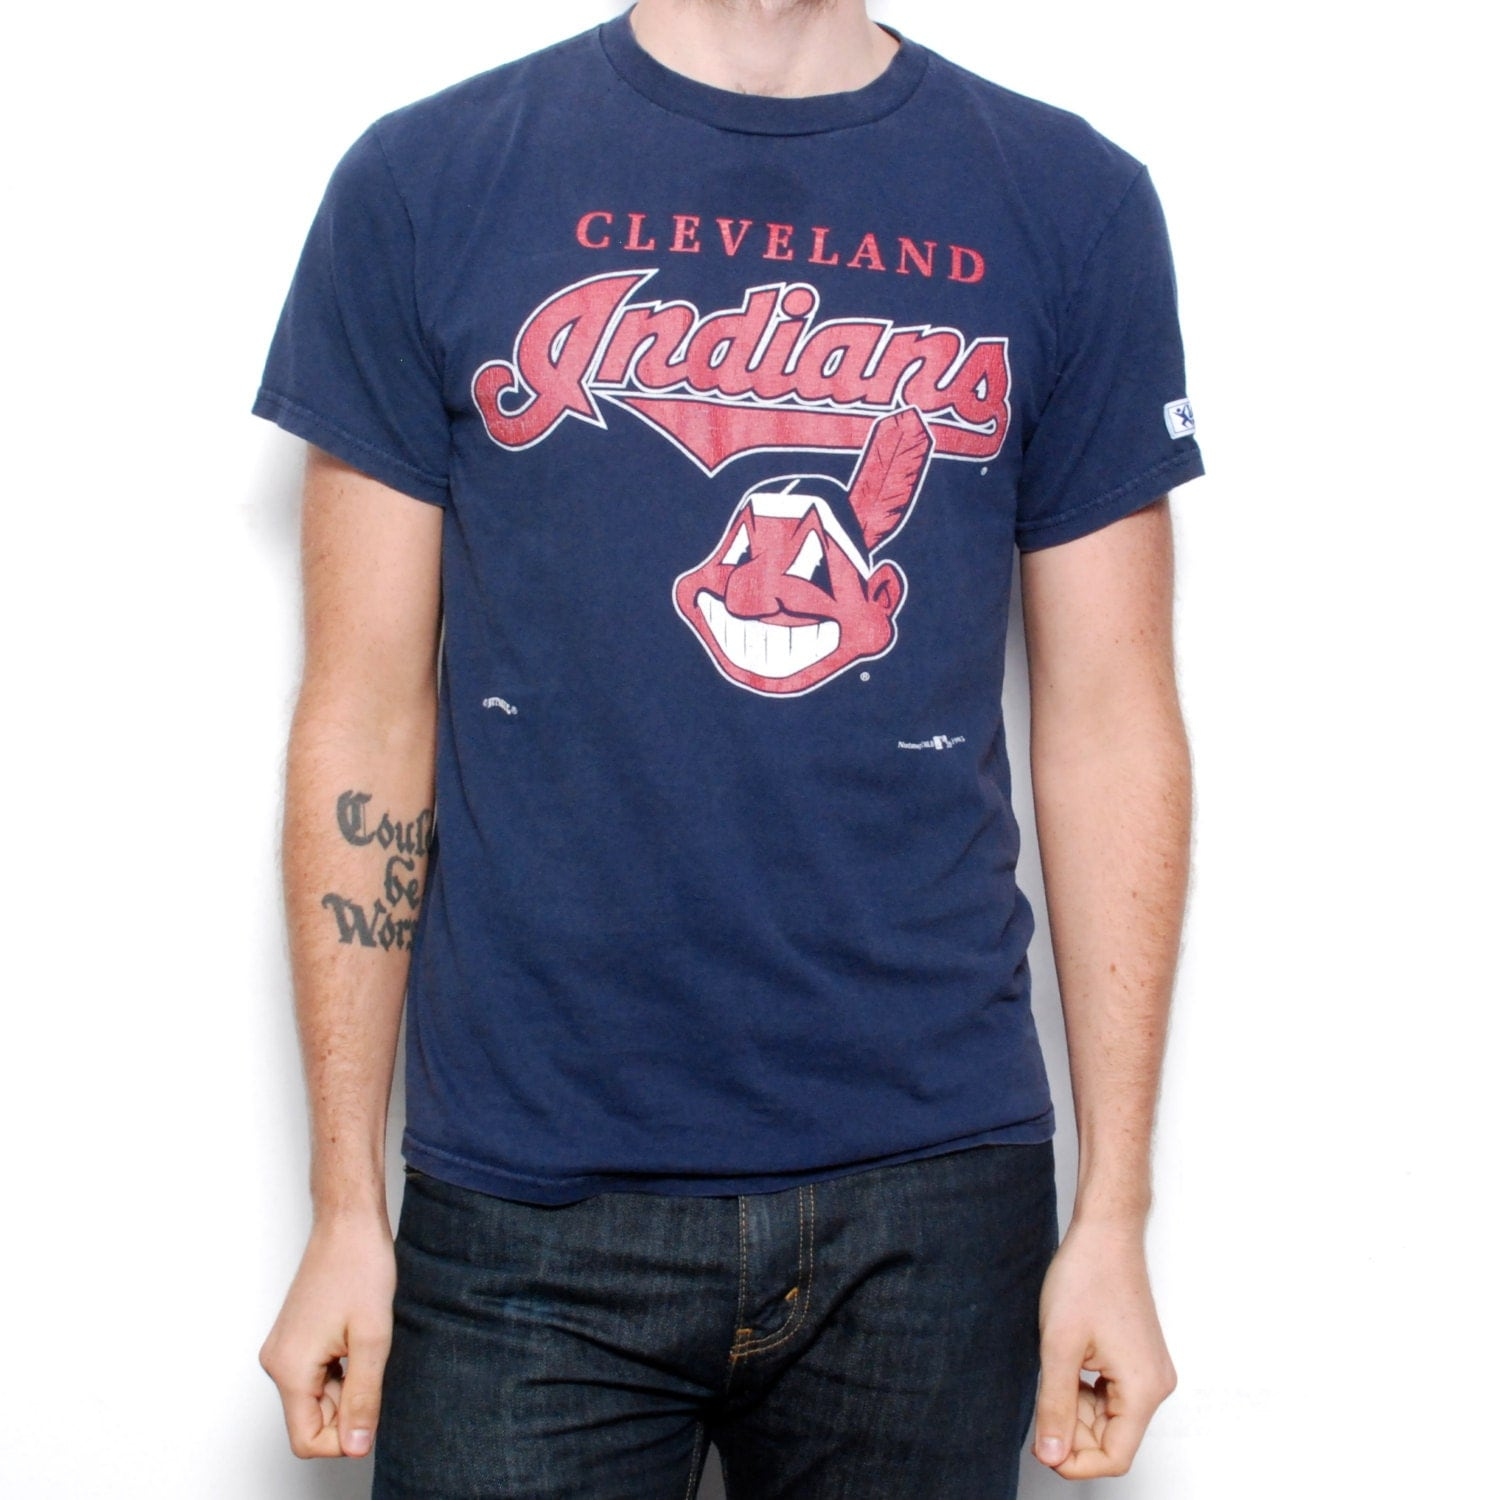 vintage cleveland indians mlb 90s t shirt made in usa